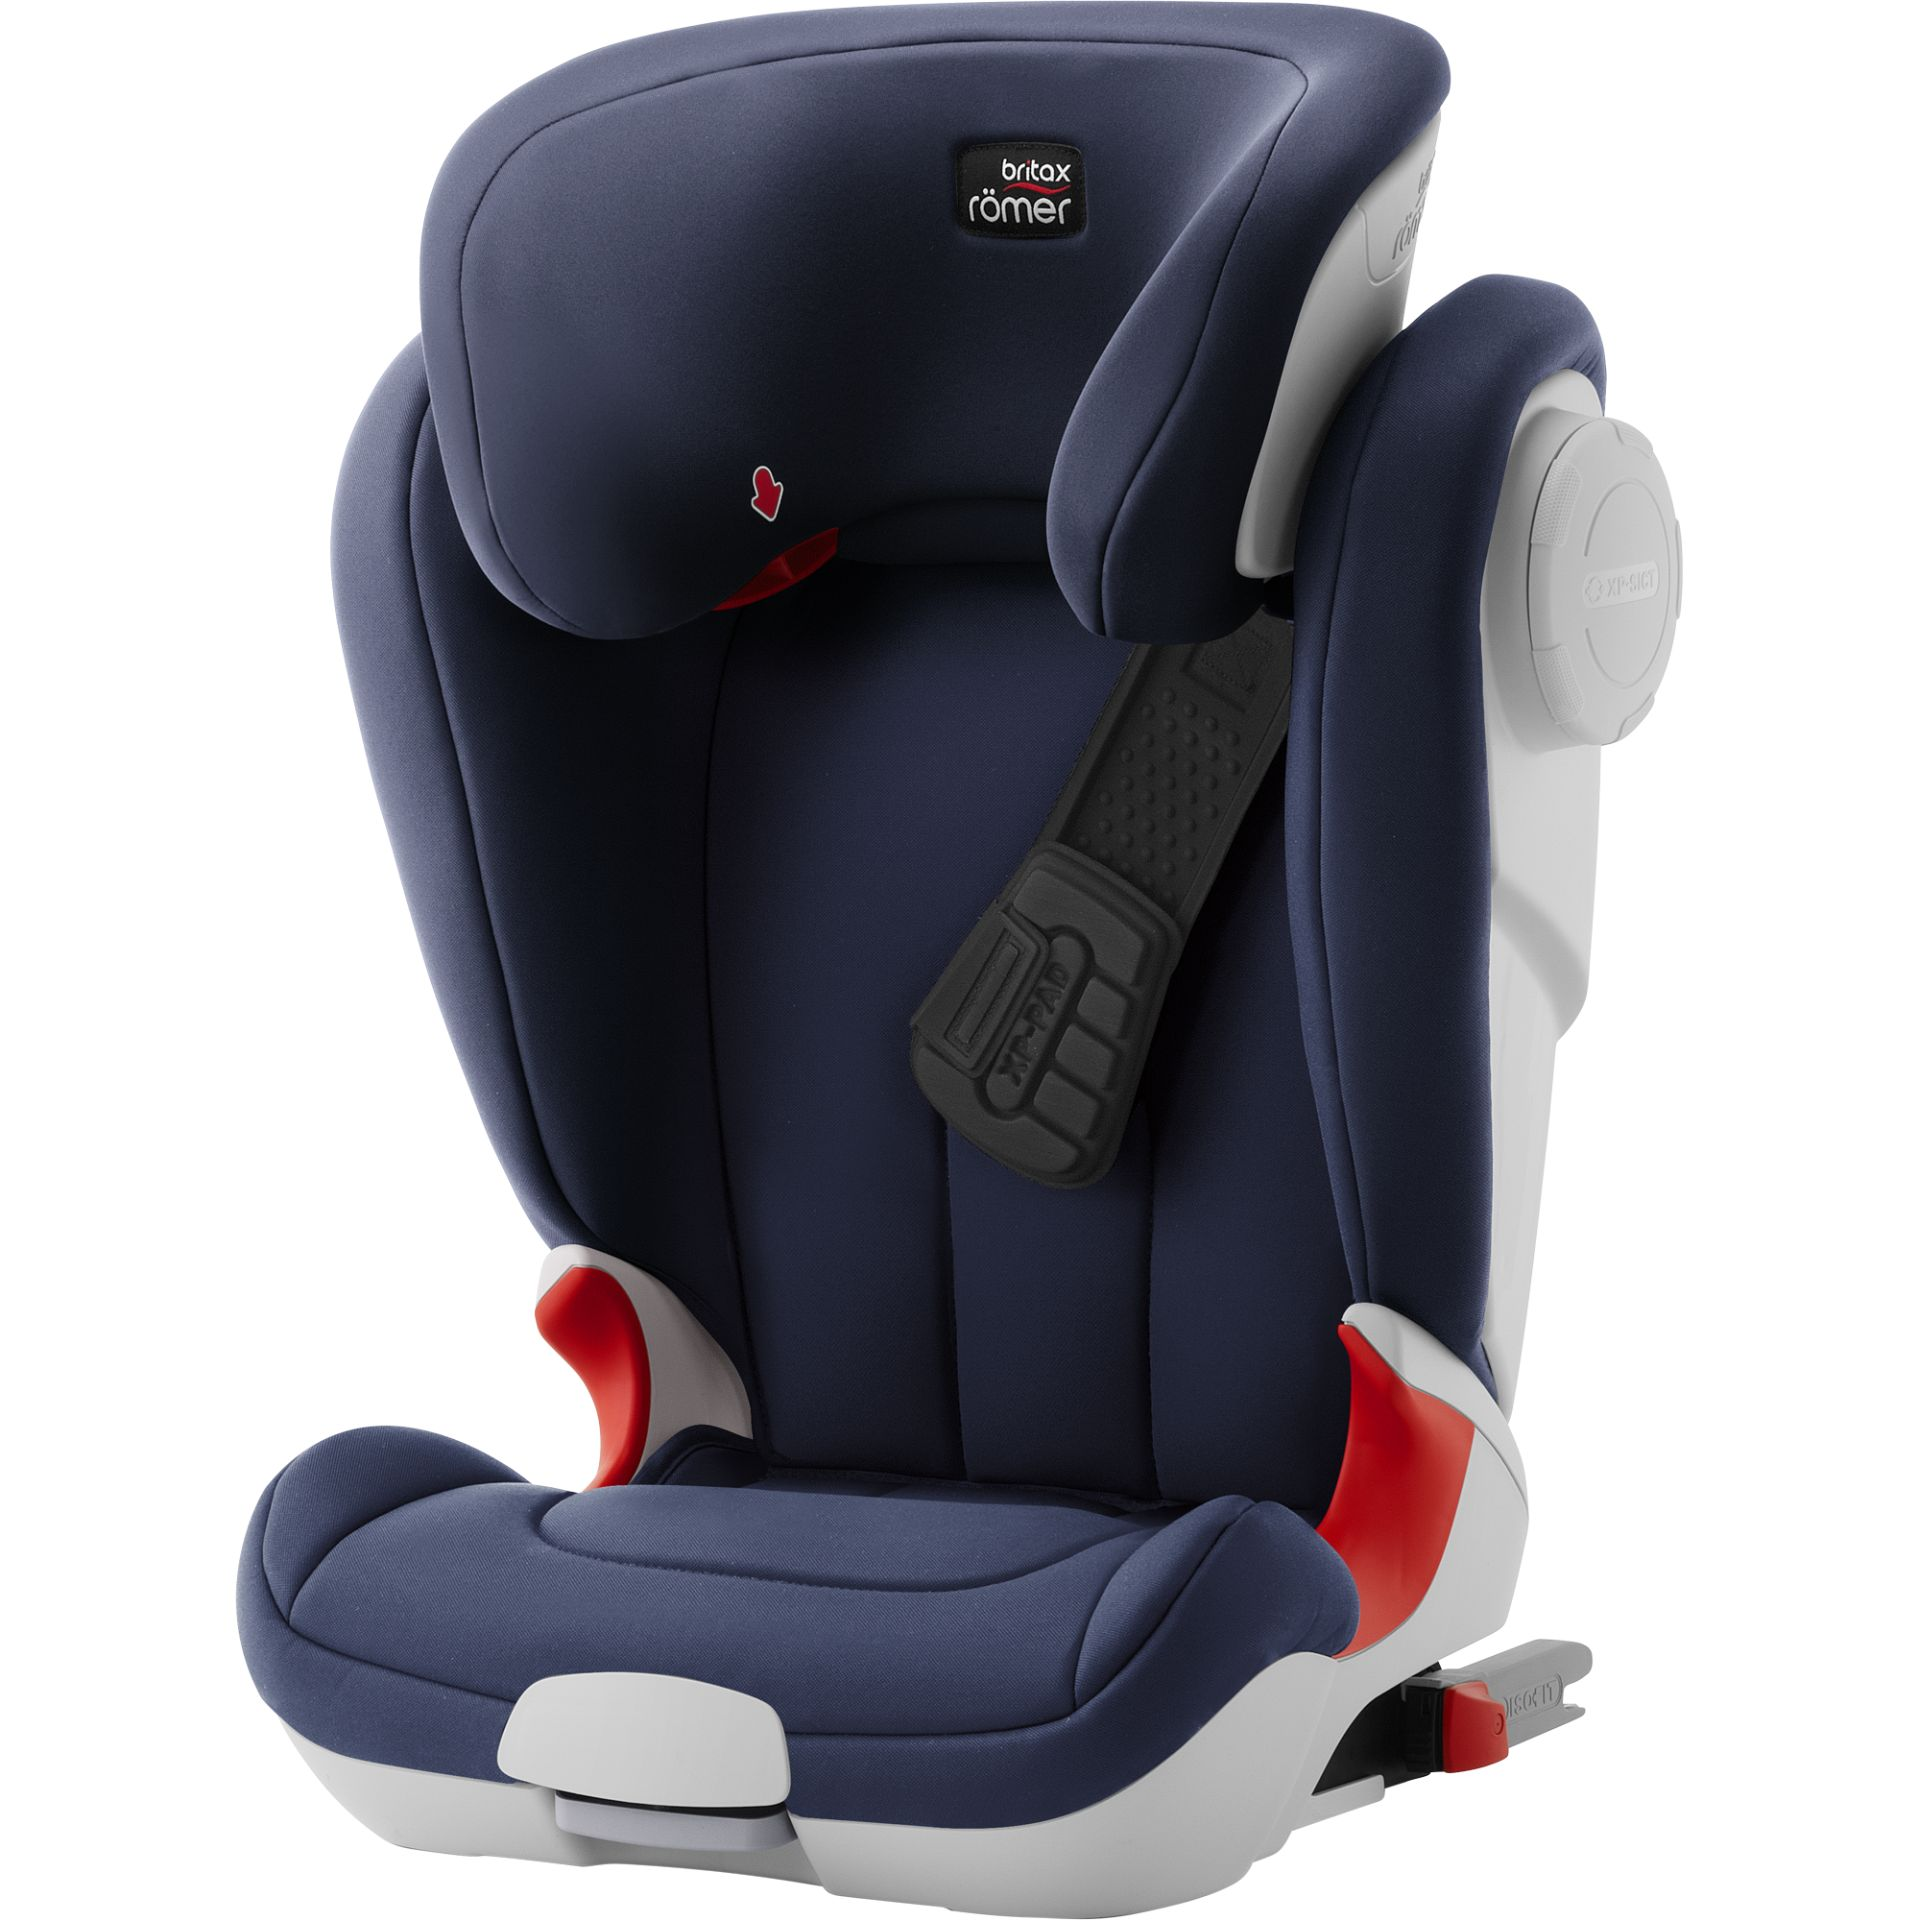 Si ge d 39 enfant britax r mer kidfix xp sict 2018 moonlight for Siege enfant